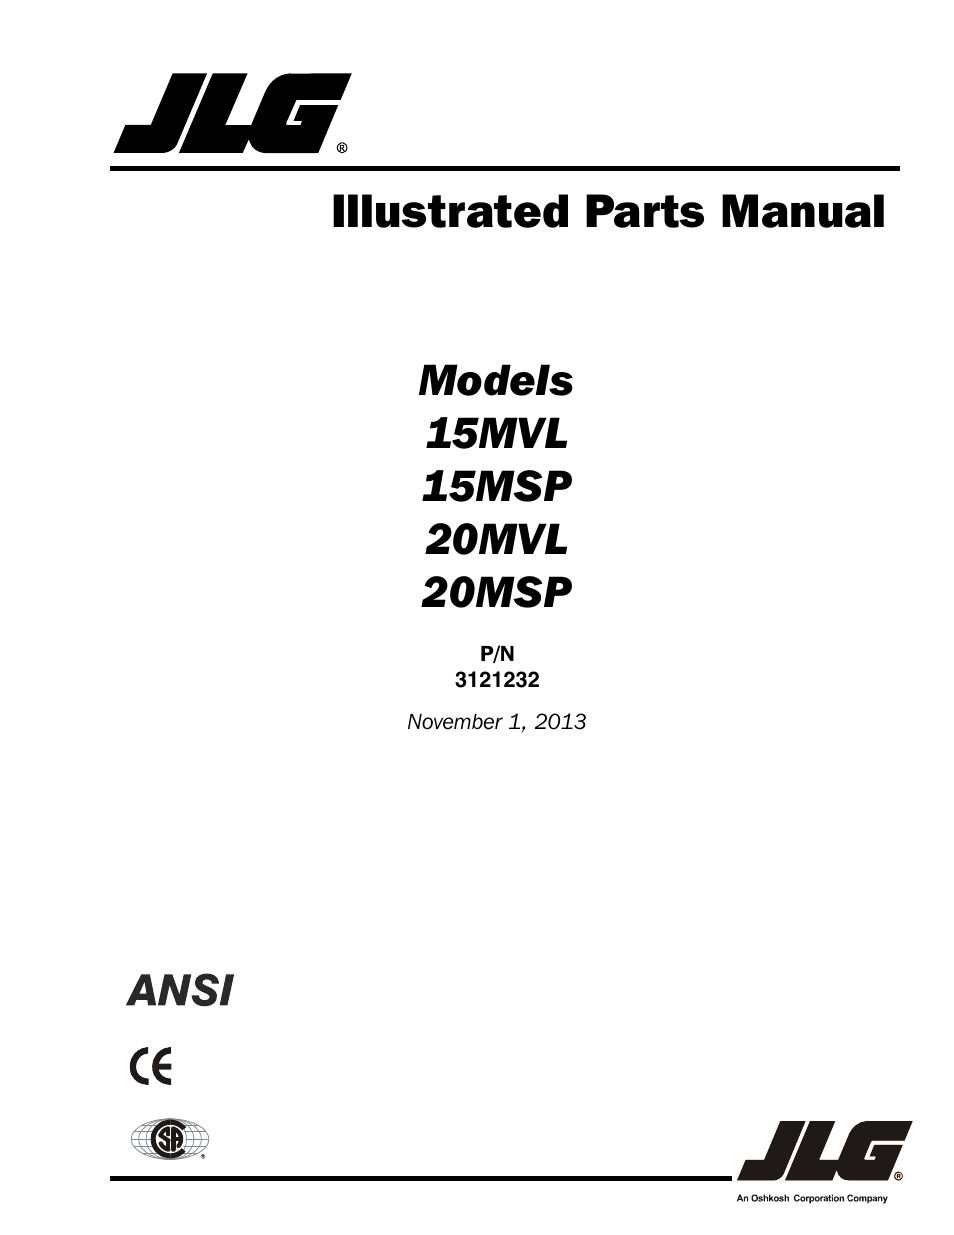 110 Schematic Wiring Jlg 15 20msp Parts Manual User Manual 140 Pages Also